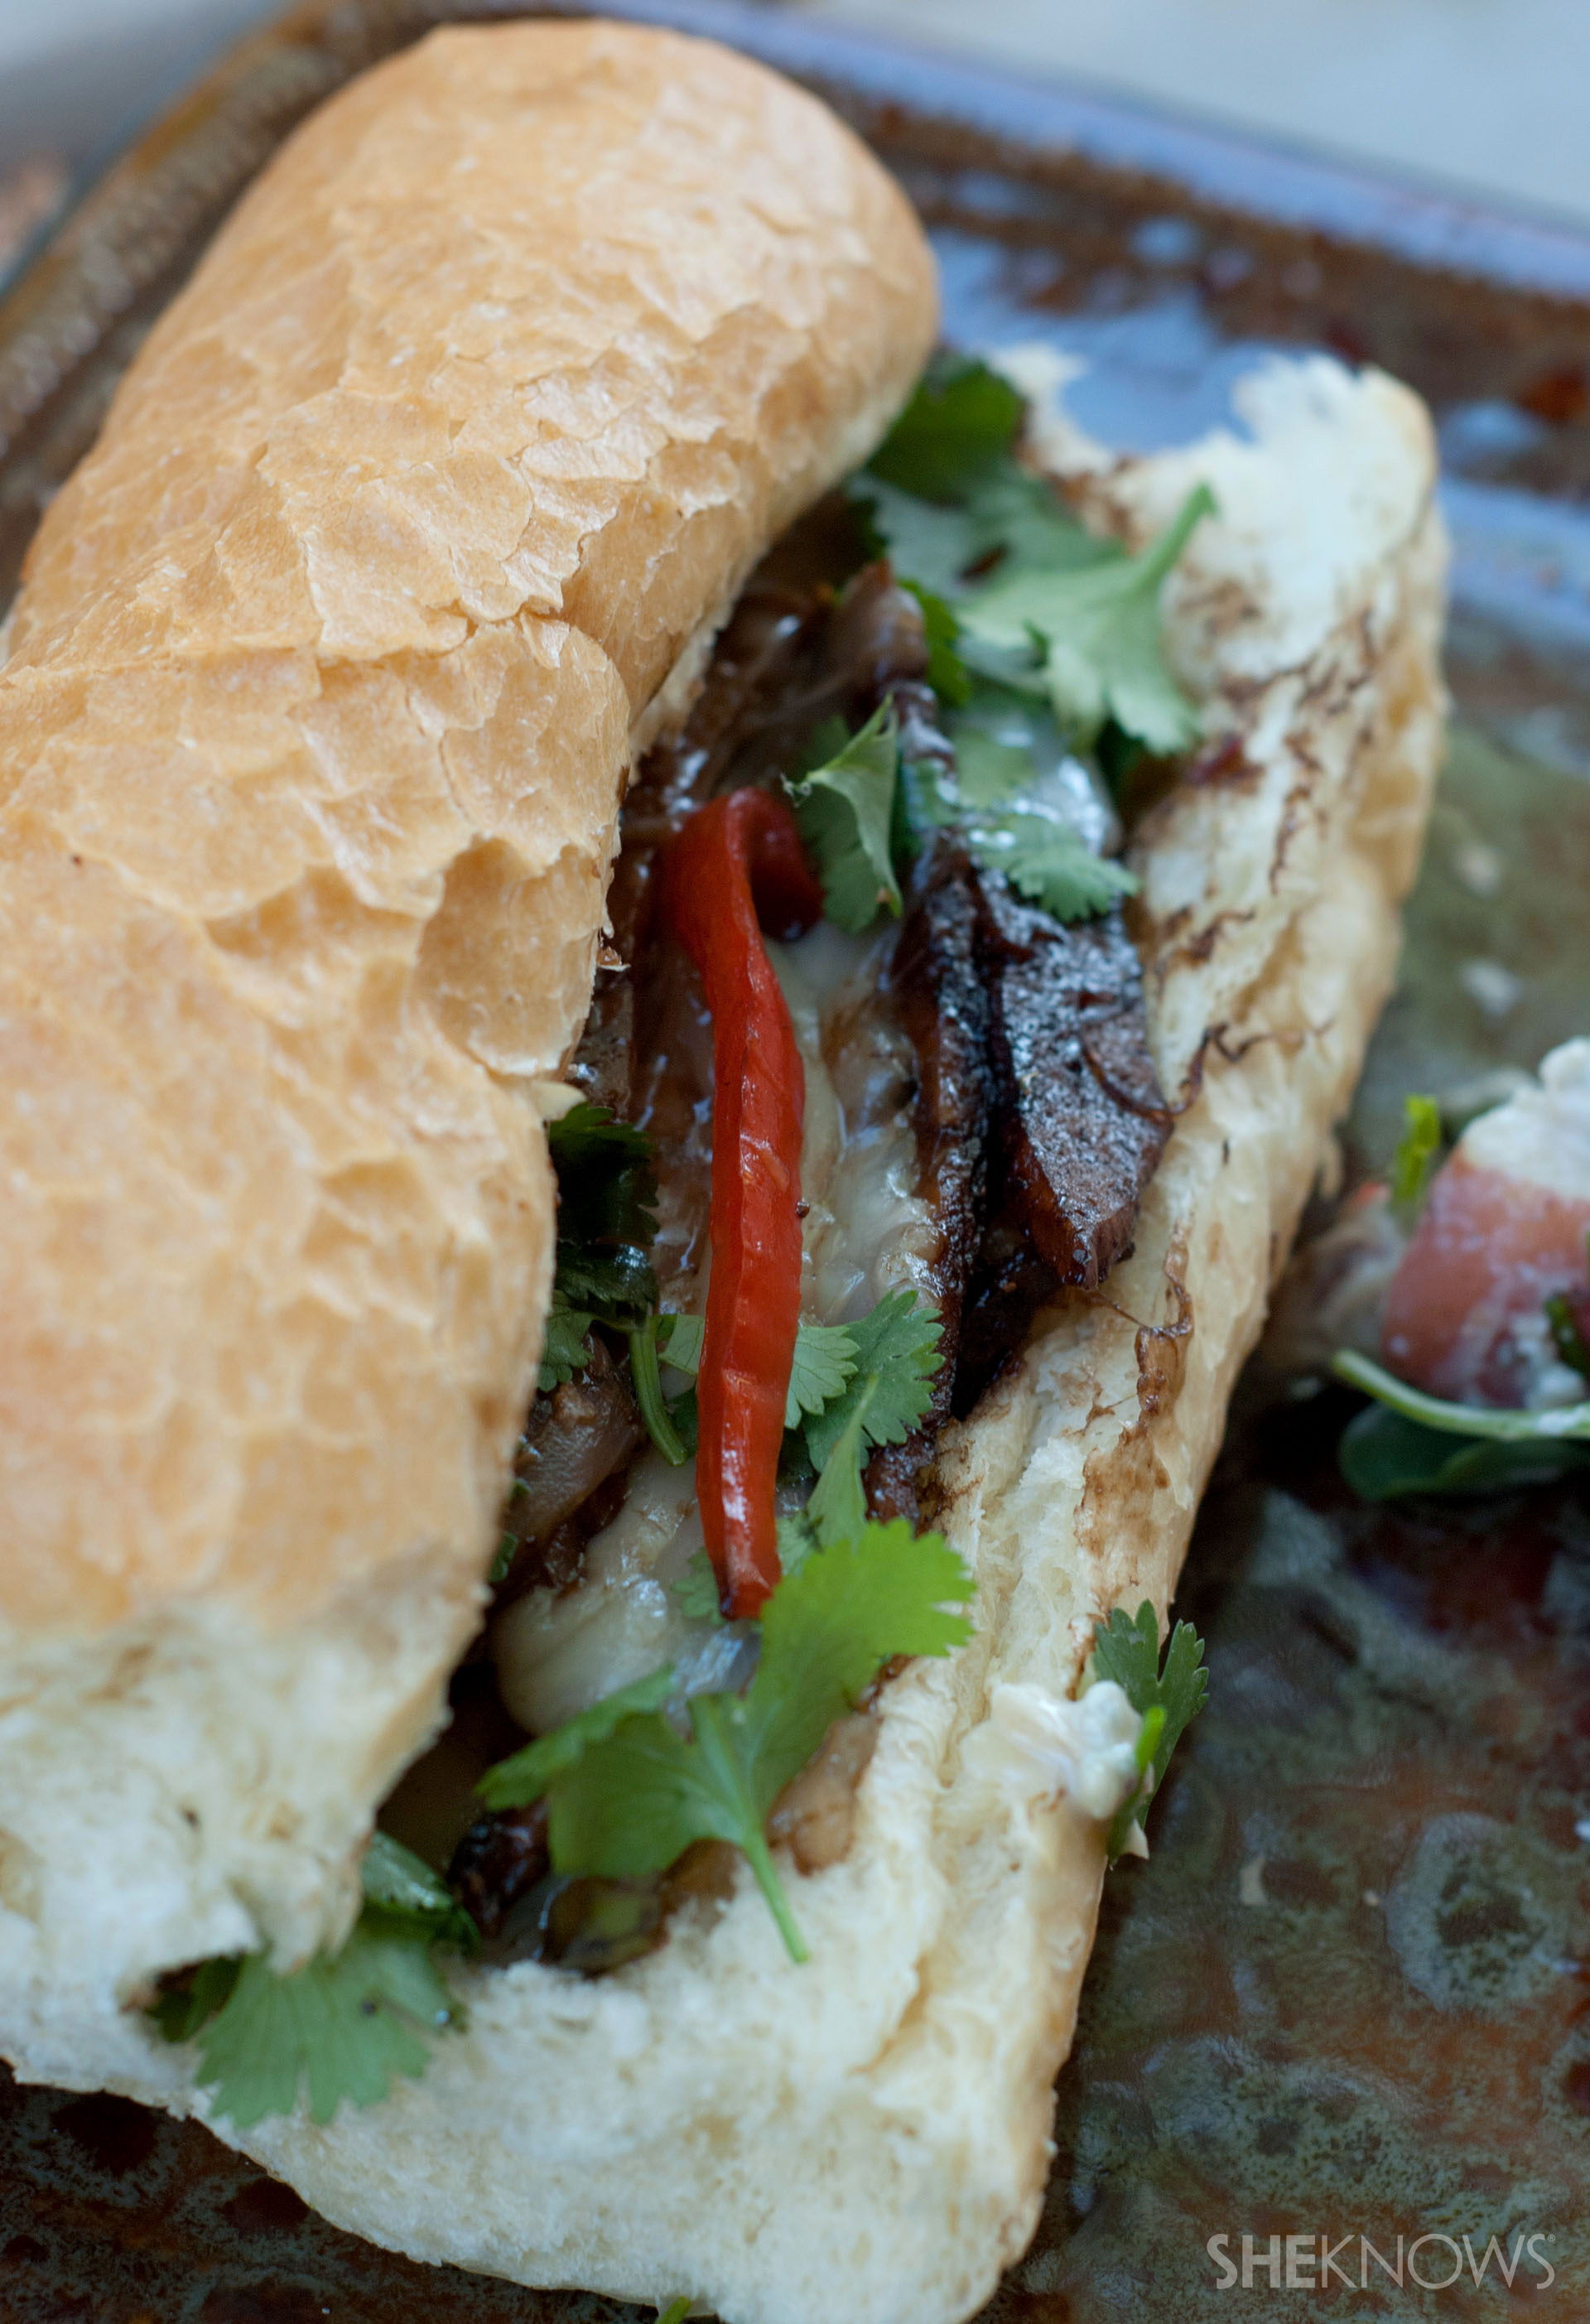 Meatless Philly cheese steak recipe